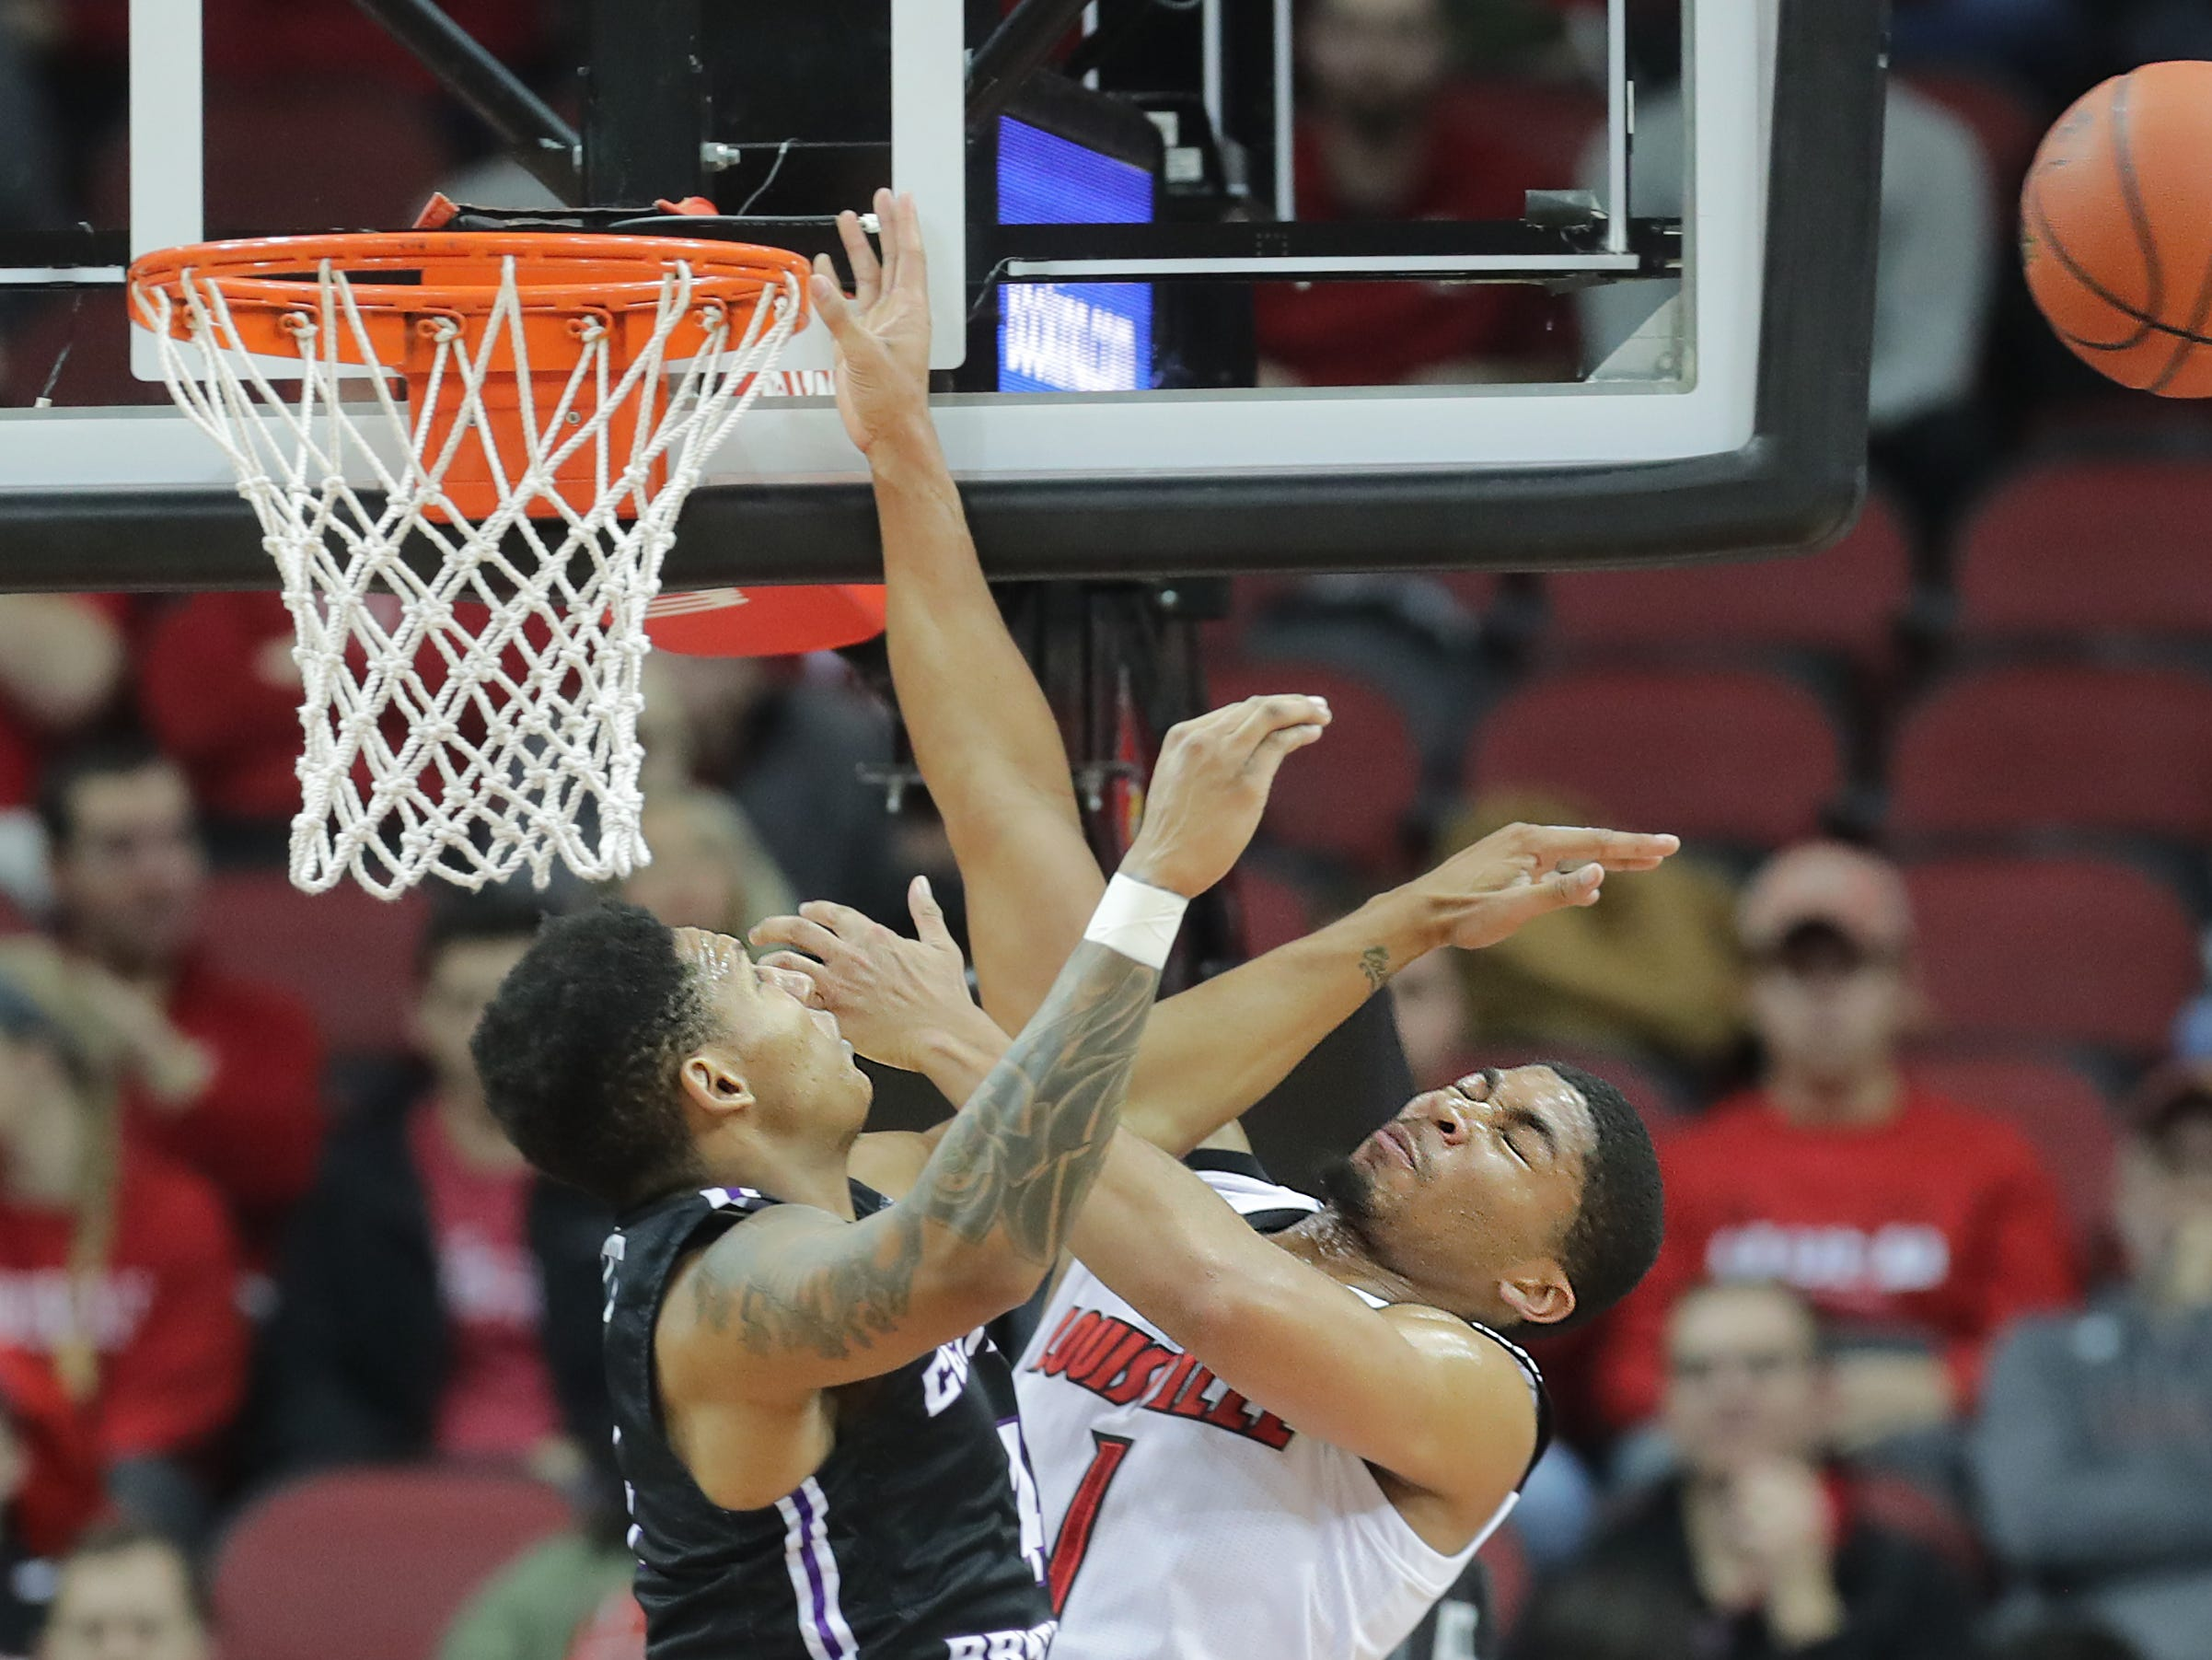 Louisville's Christen Cunningham gets fouled by Central Arkansas' Khaleem Bennett. 